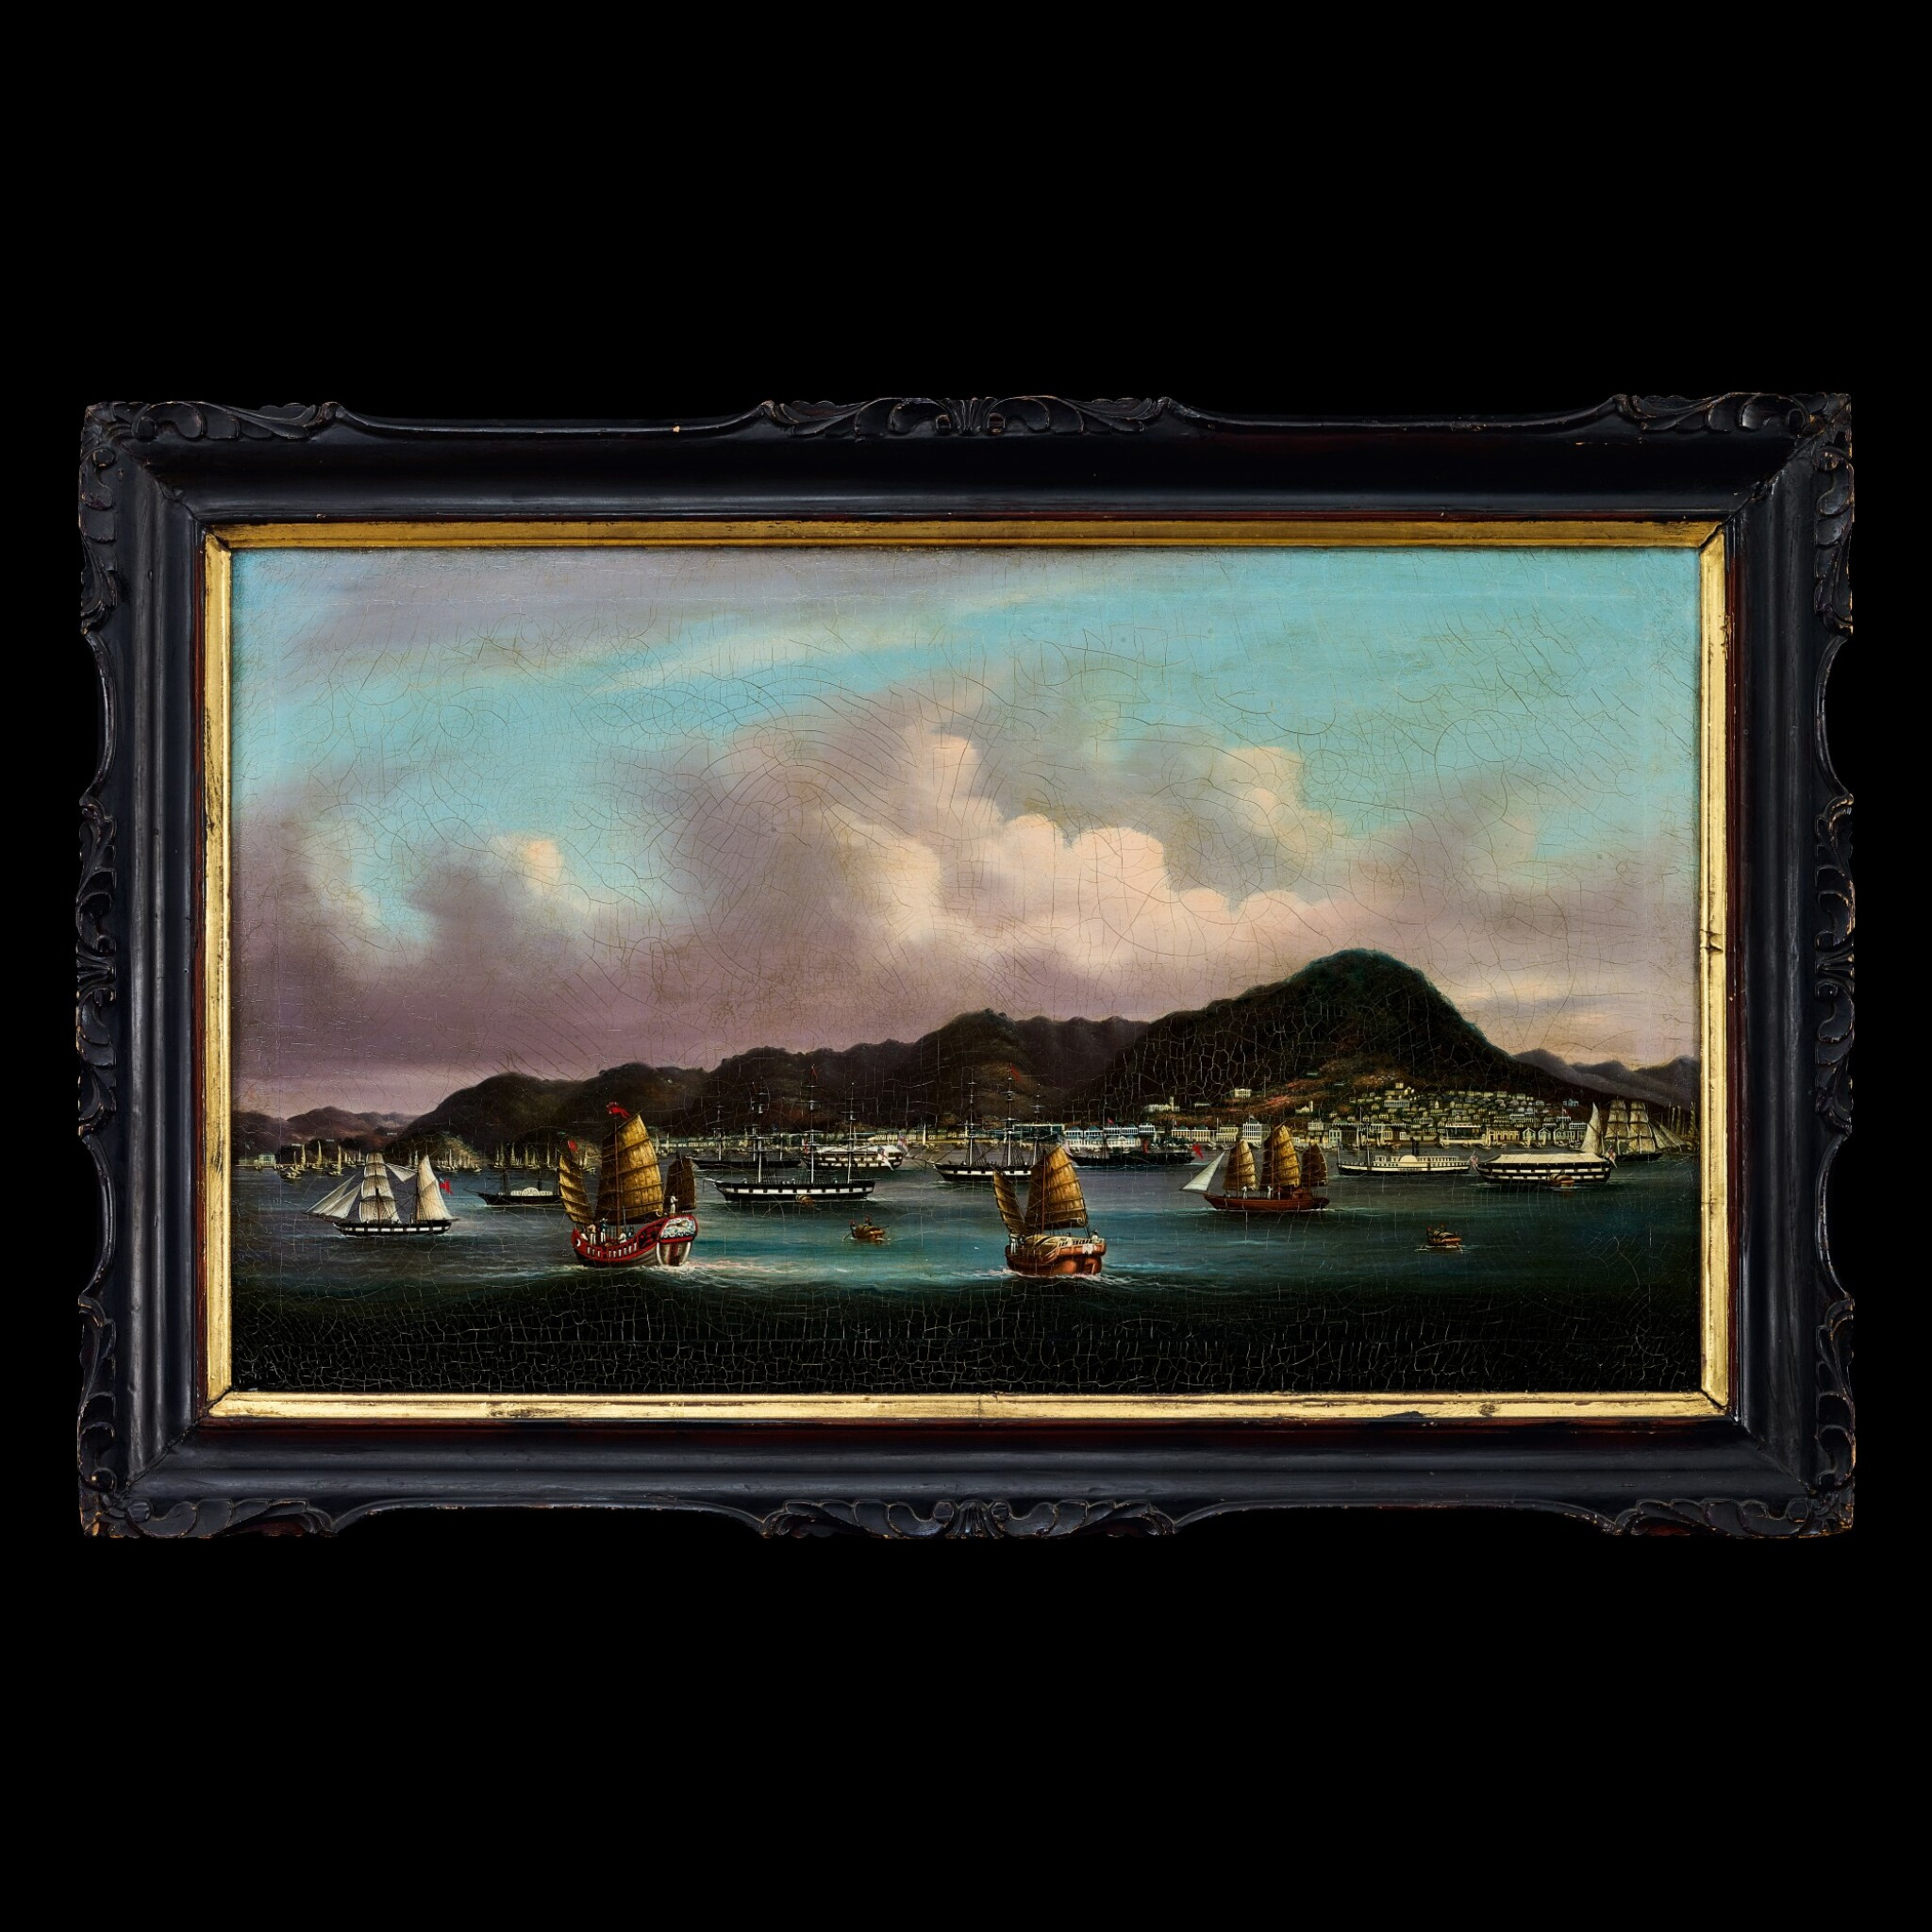 View full screen - View 1 of Lot 188. Youqua (fl. 1840-1880), circa 1850 View of Hong Kong from the Victoria Harbour | 煜呱(活躍於1840-1880年) 約1850年    香港維多利亞海港圖 布本油畫 木框.